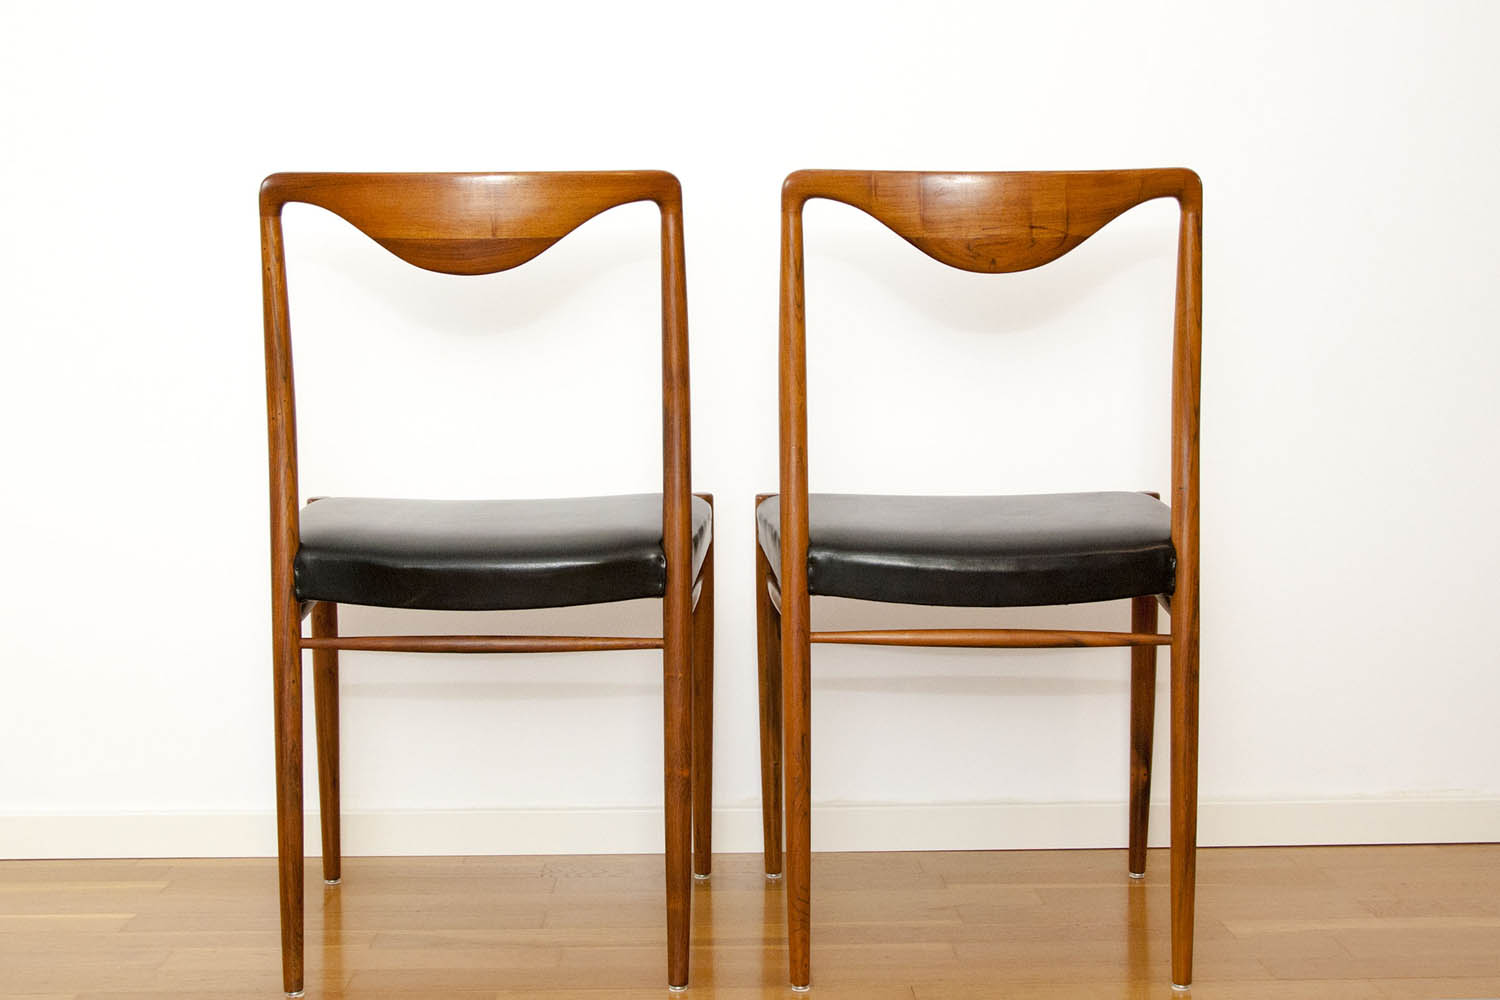 Dansk Design Koksstolar : design koksstolar  Dining Chairs Scandinavian Design & exclusive